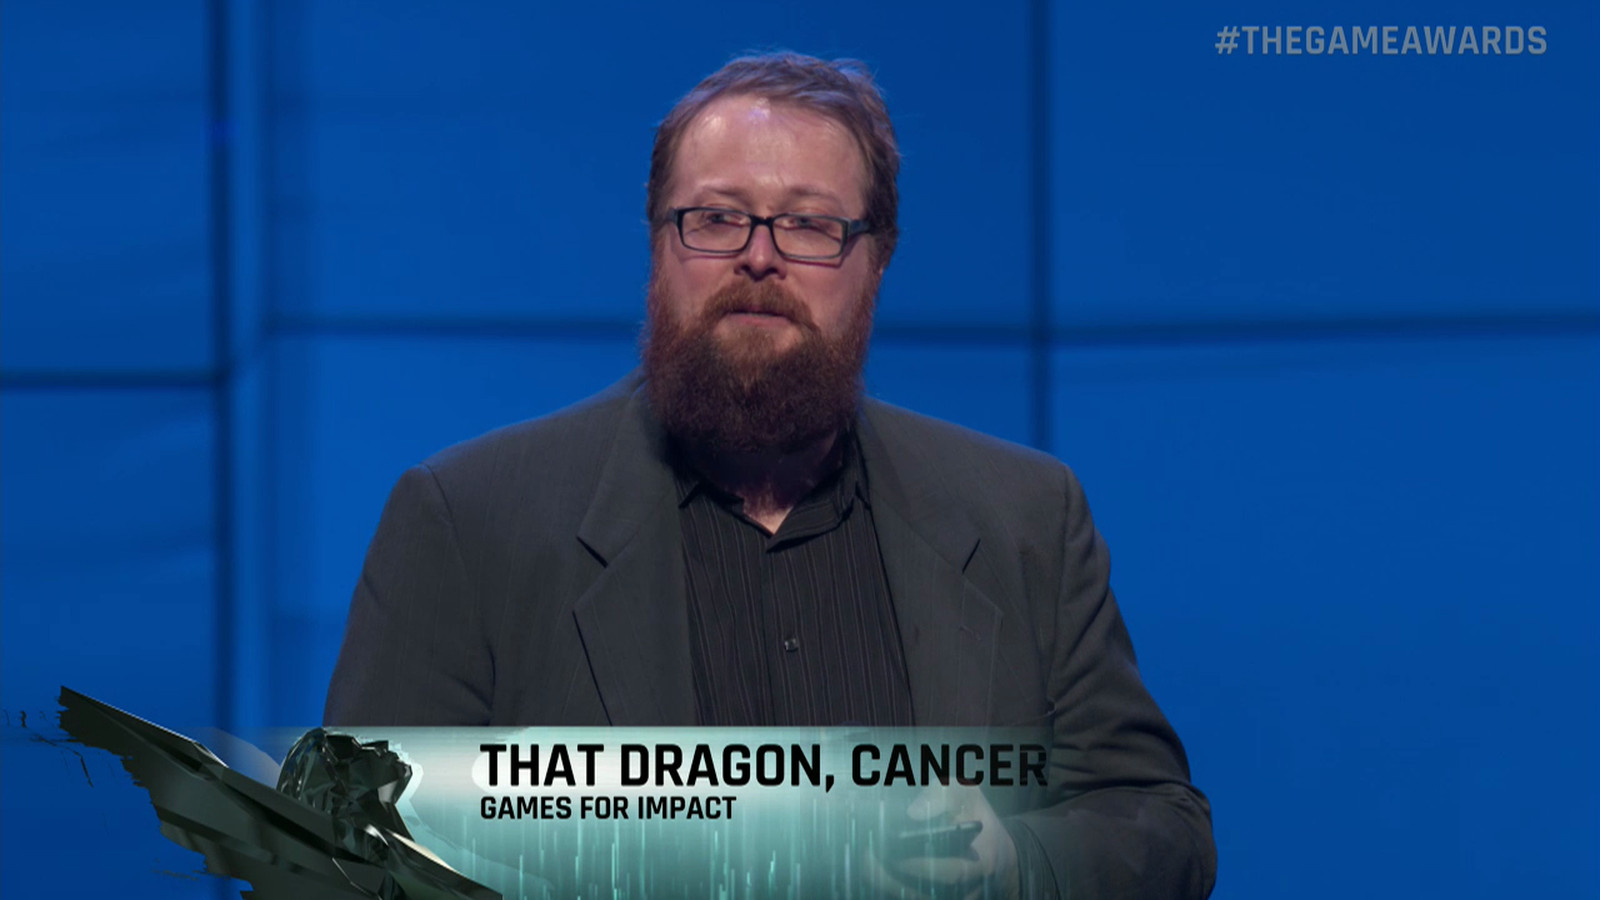 That Dragon, Cancer's co-creator gets tearful after Game Awards win